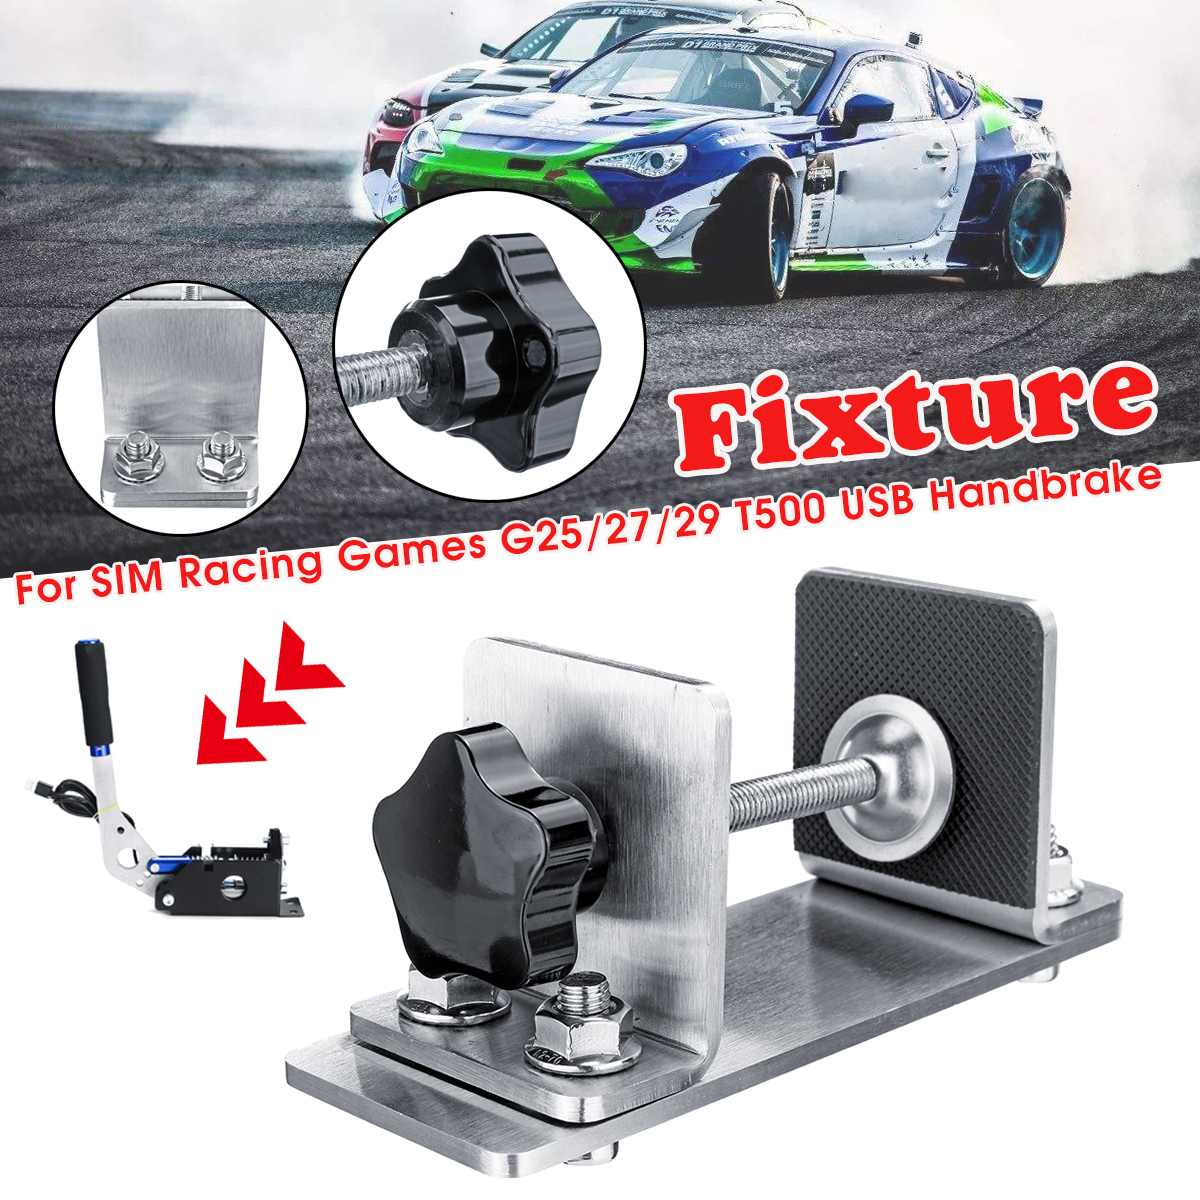 USB Handbrake Fixture Clamp PC Windows for Sim Racing Game for G25 G27 G29 T500 DIRT RALLY image